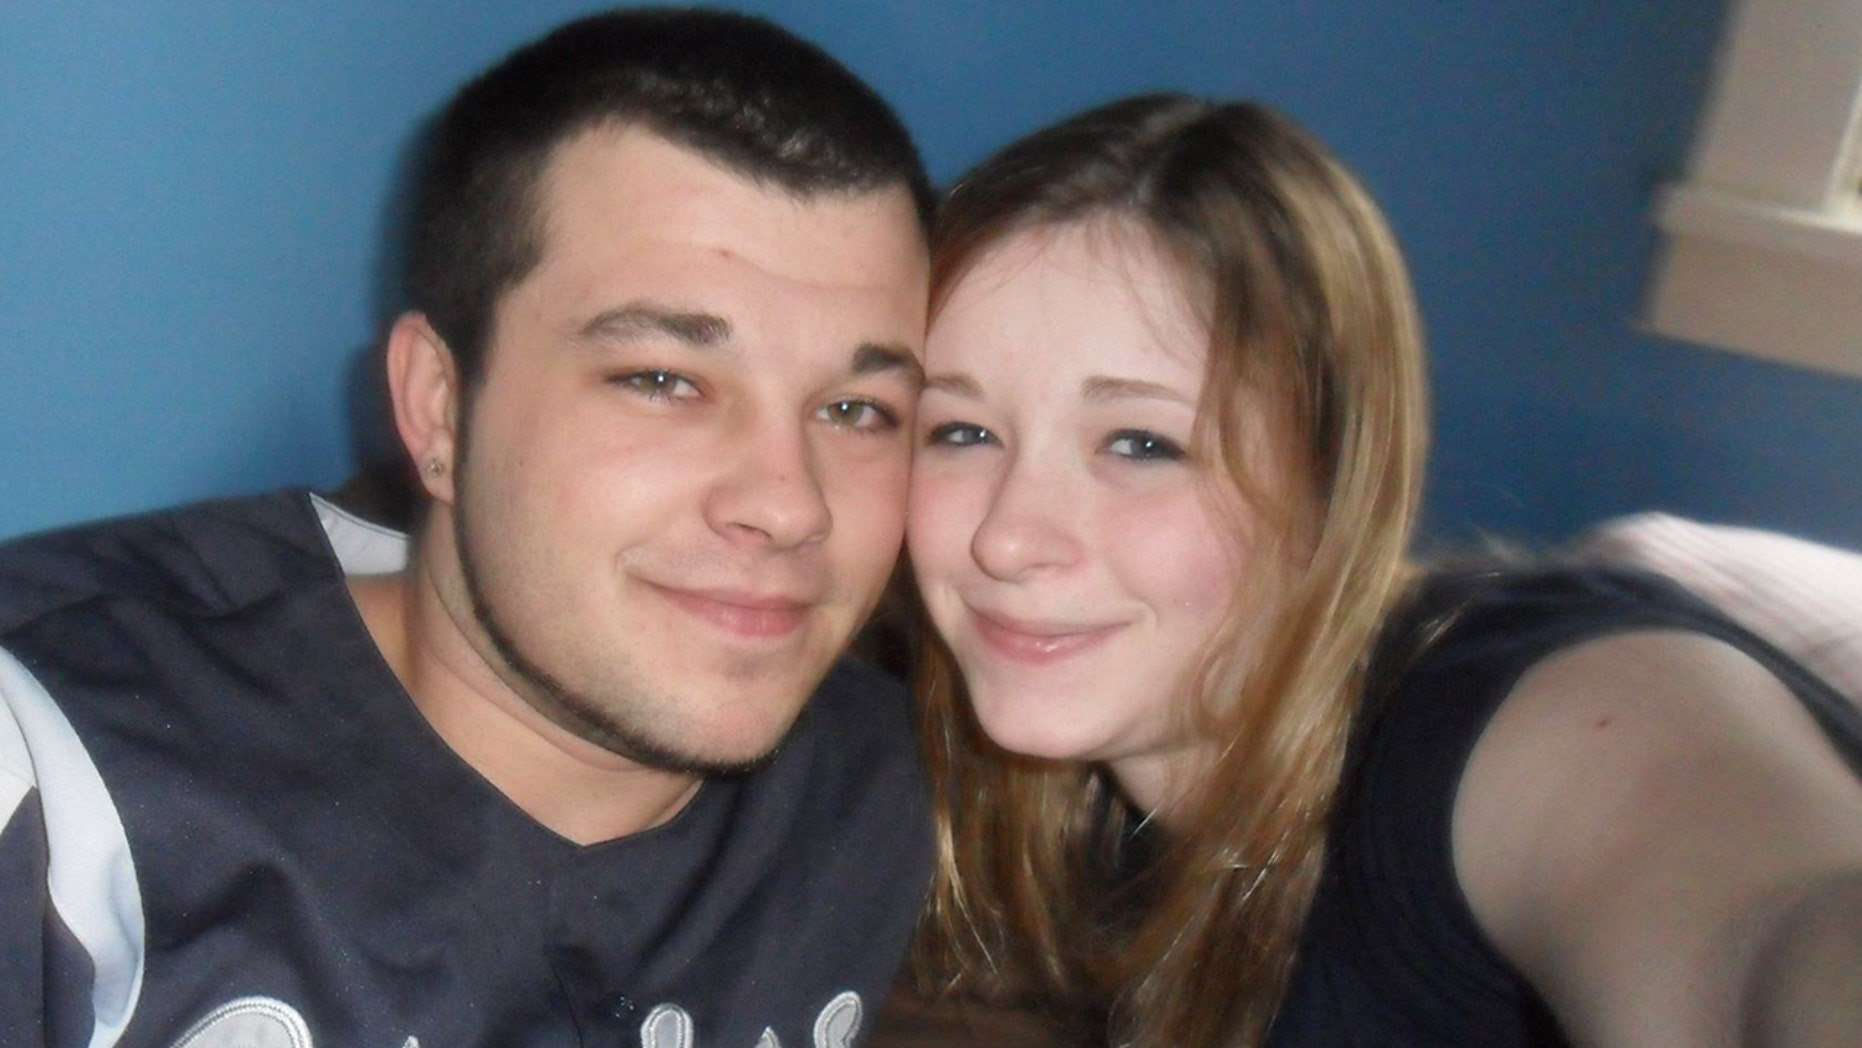 Joshua Niles, 28, and Amber Washburn, 24, were shot and killed Monday.